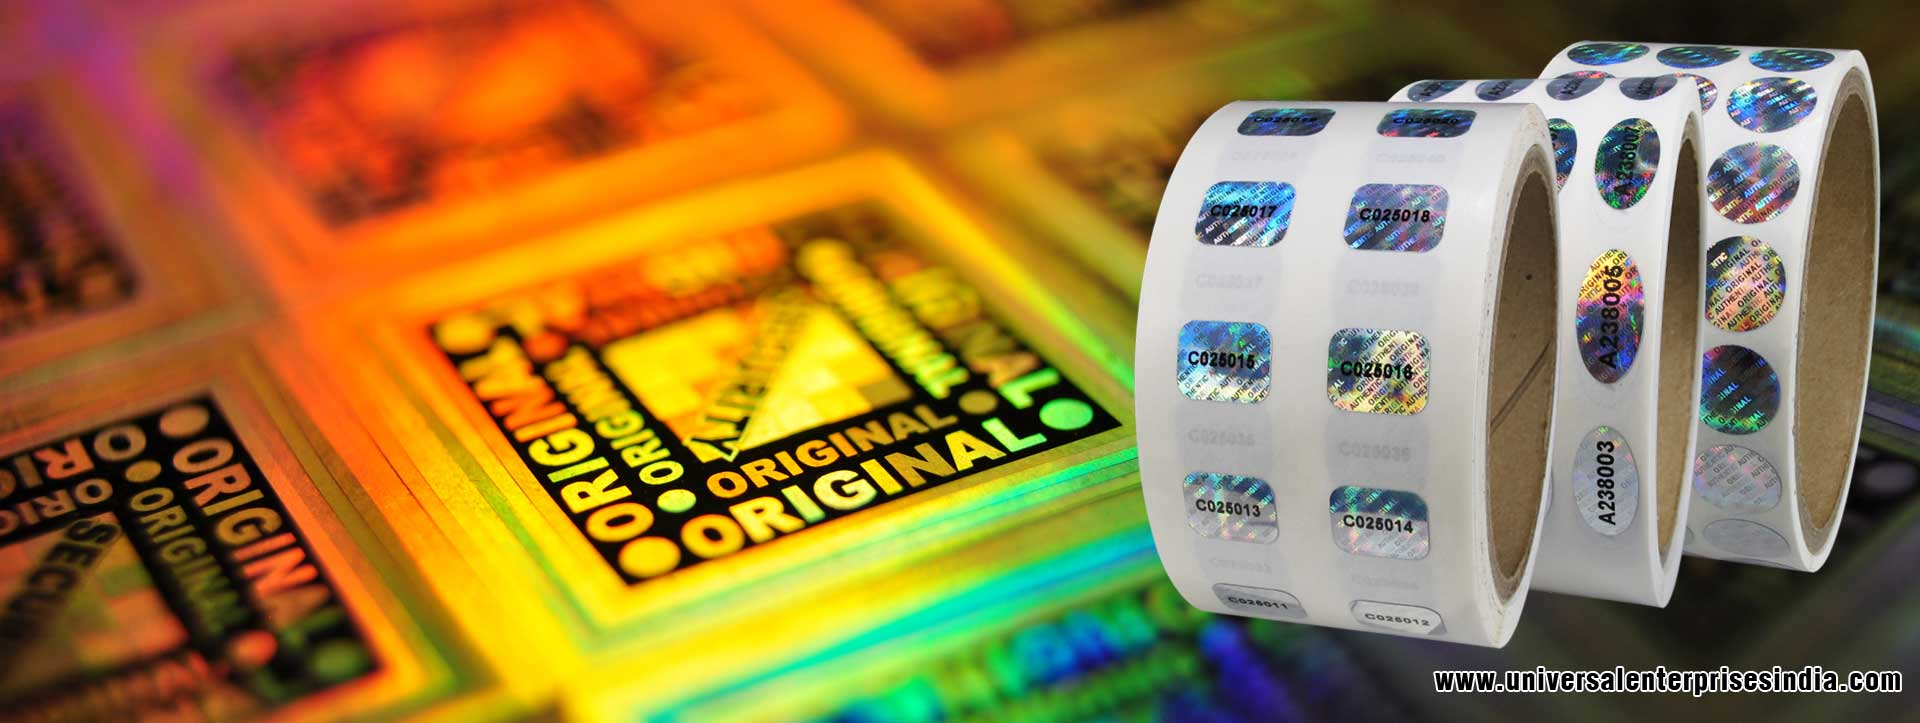 Hologram Labels Hologram Stickers Hologram with Barcodes manufacturers suppliers dealers in ludhiana Punjab India